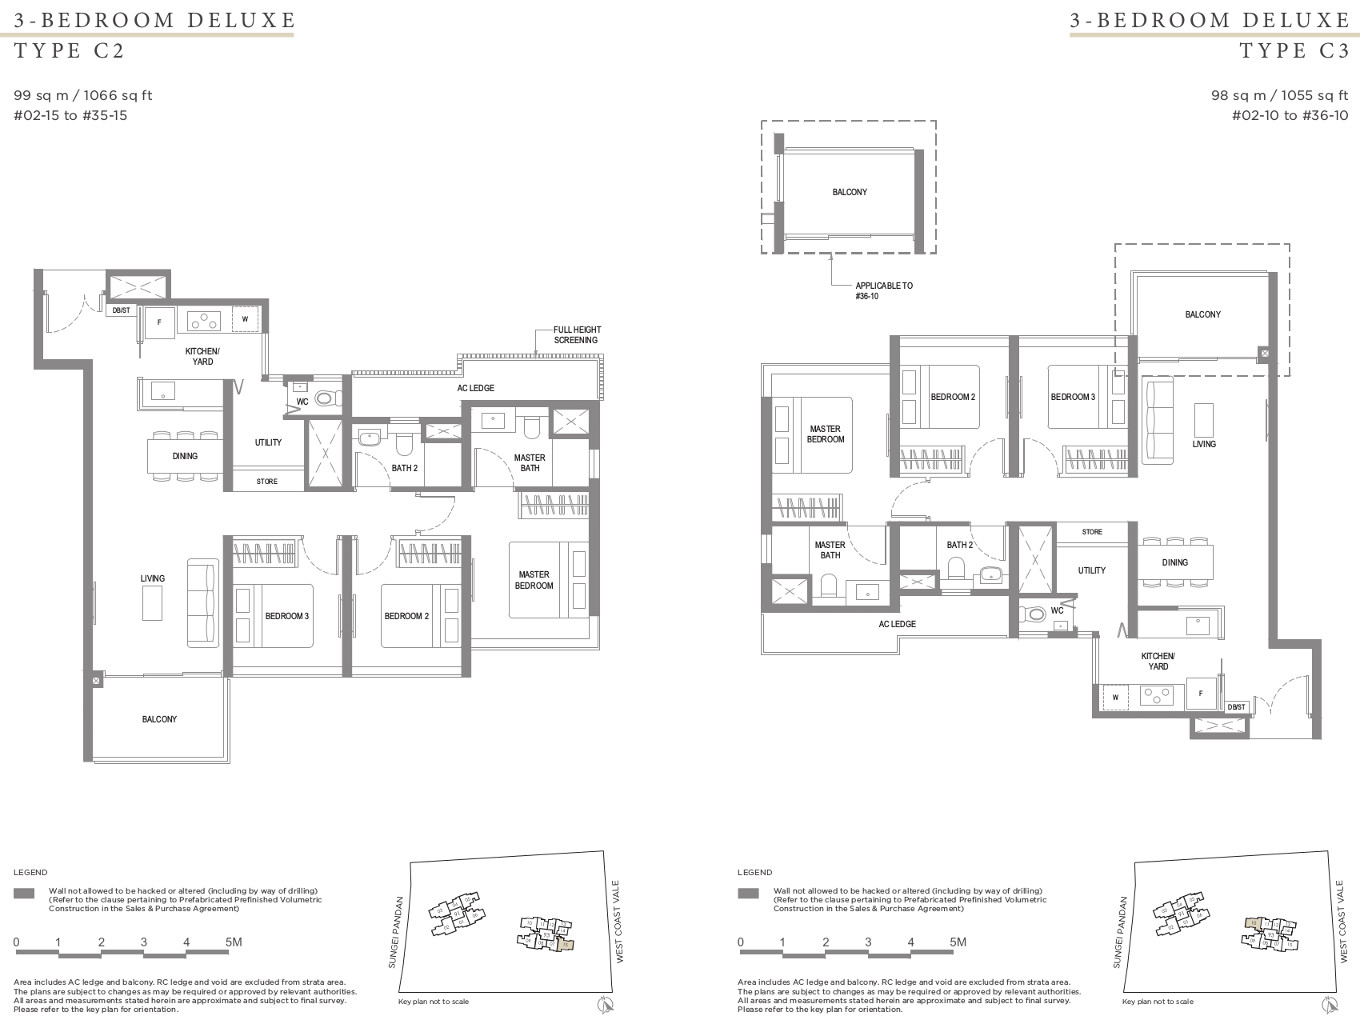 Twin VEW Condo Floor Plan 3 Bedroom Types C2 & C3